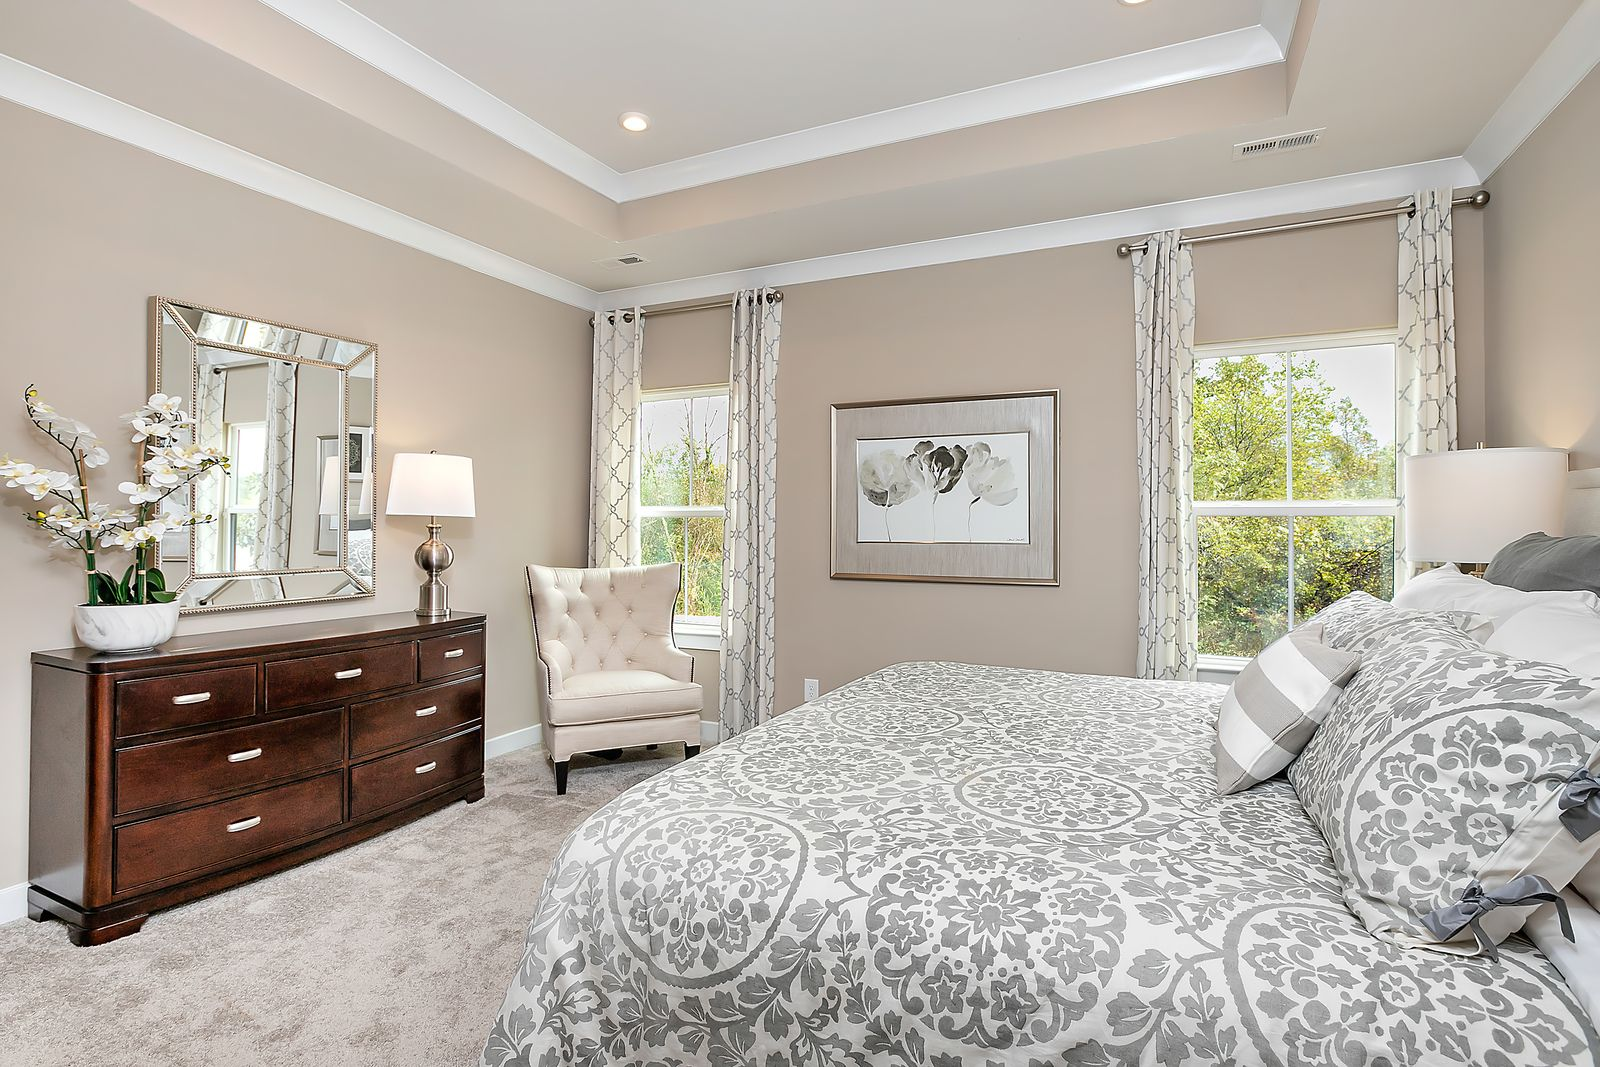 Bedroom featured in the Bramante 2 Story Slab - Basement Available By Ryan Homes in Chicago, IL